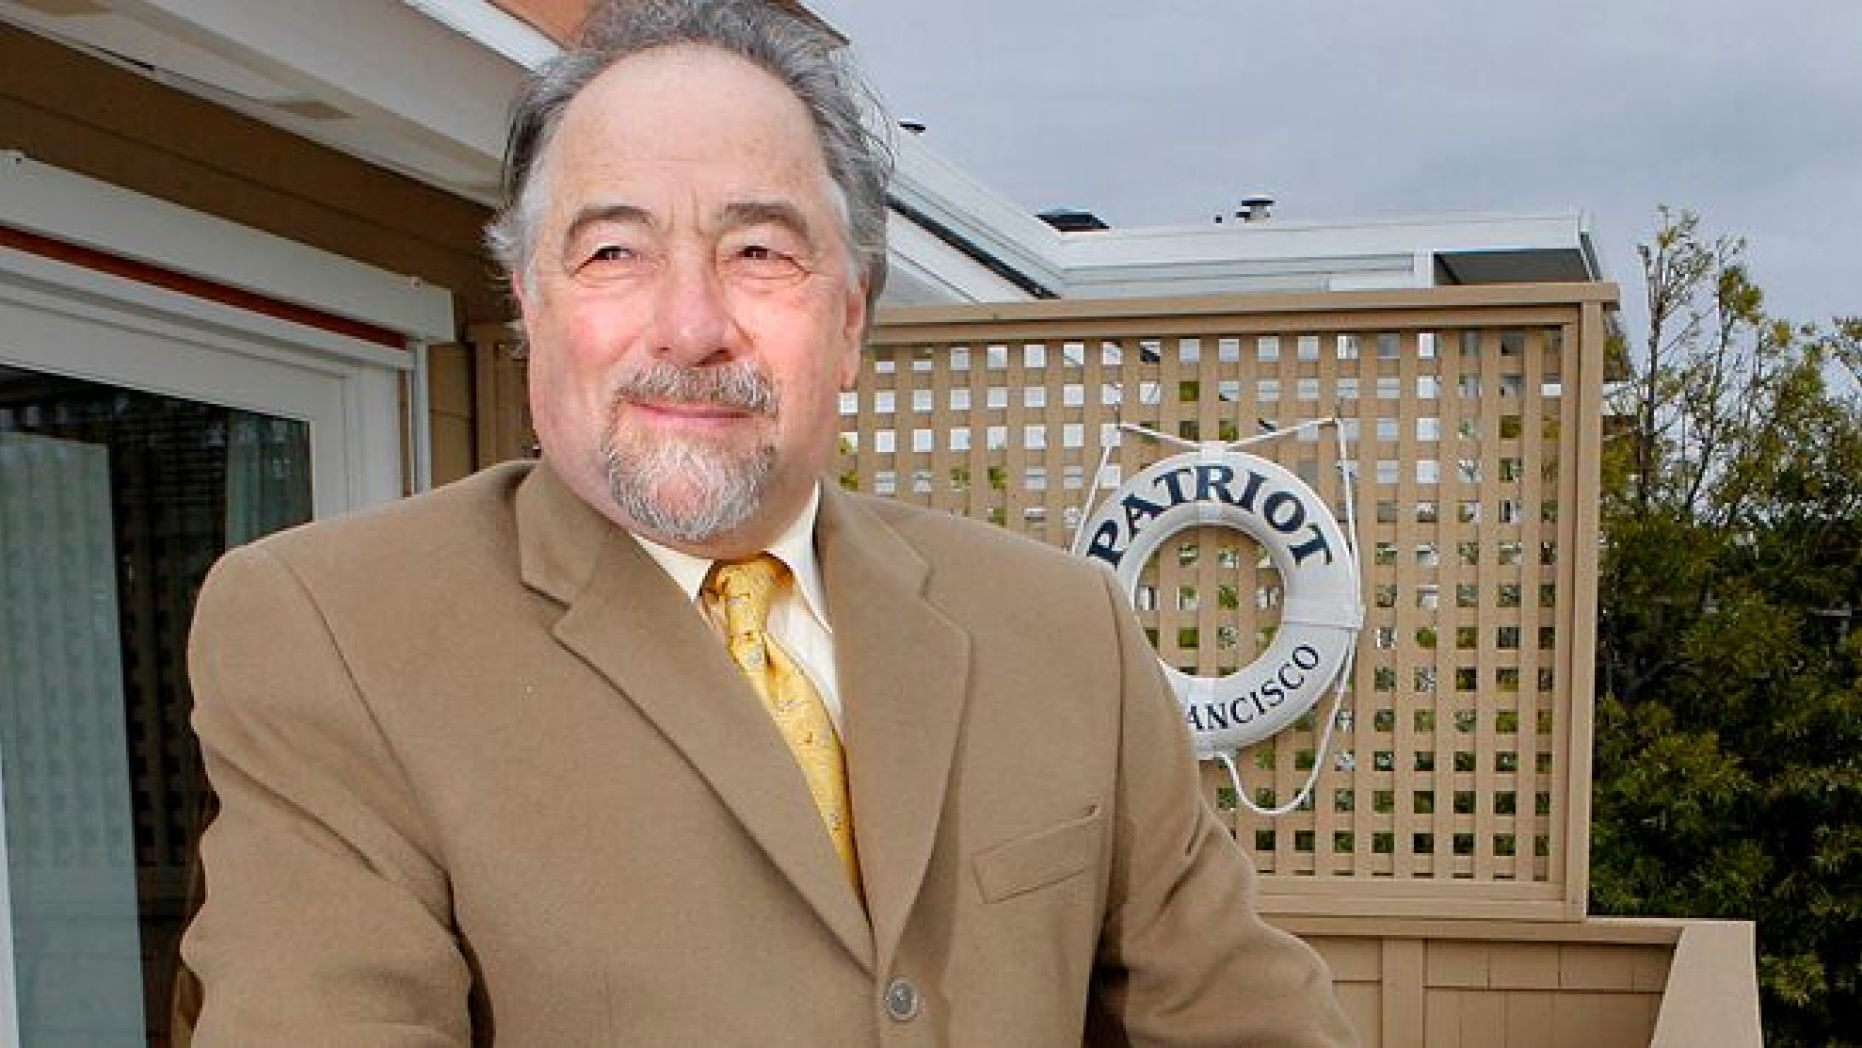 Radio host Michael Savage ripped for comments after Rush Limbaugh's cancer update